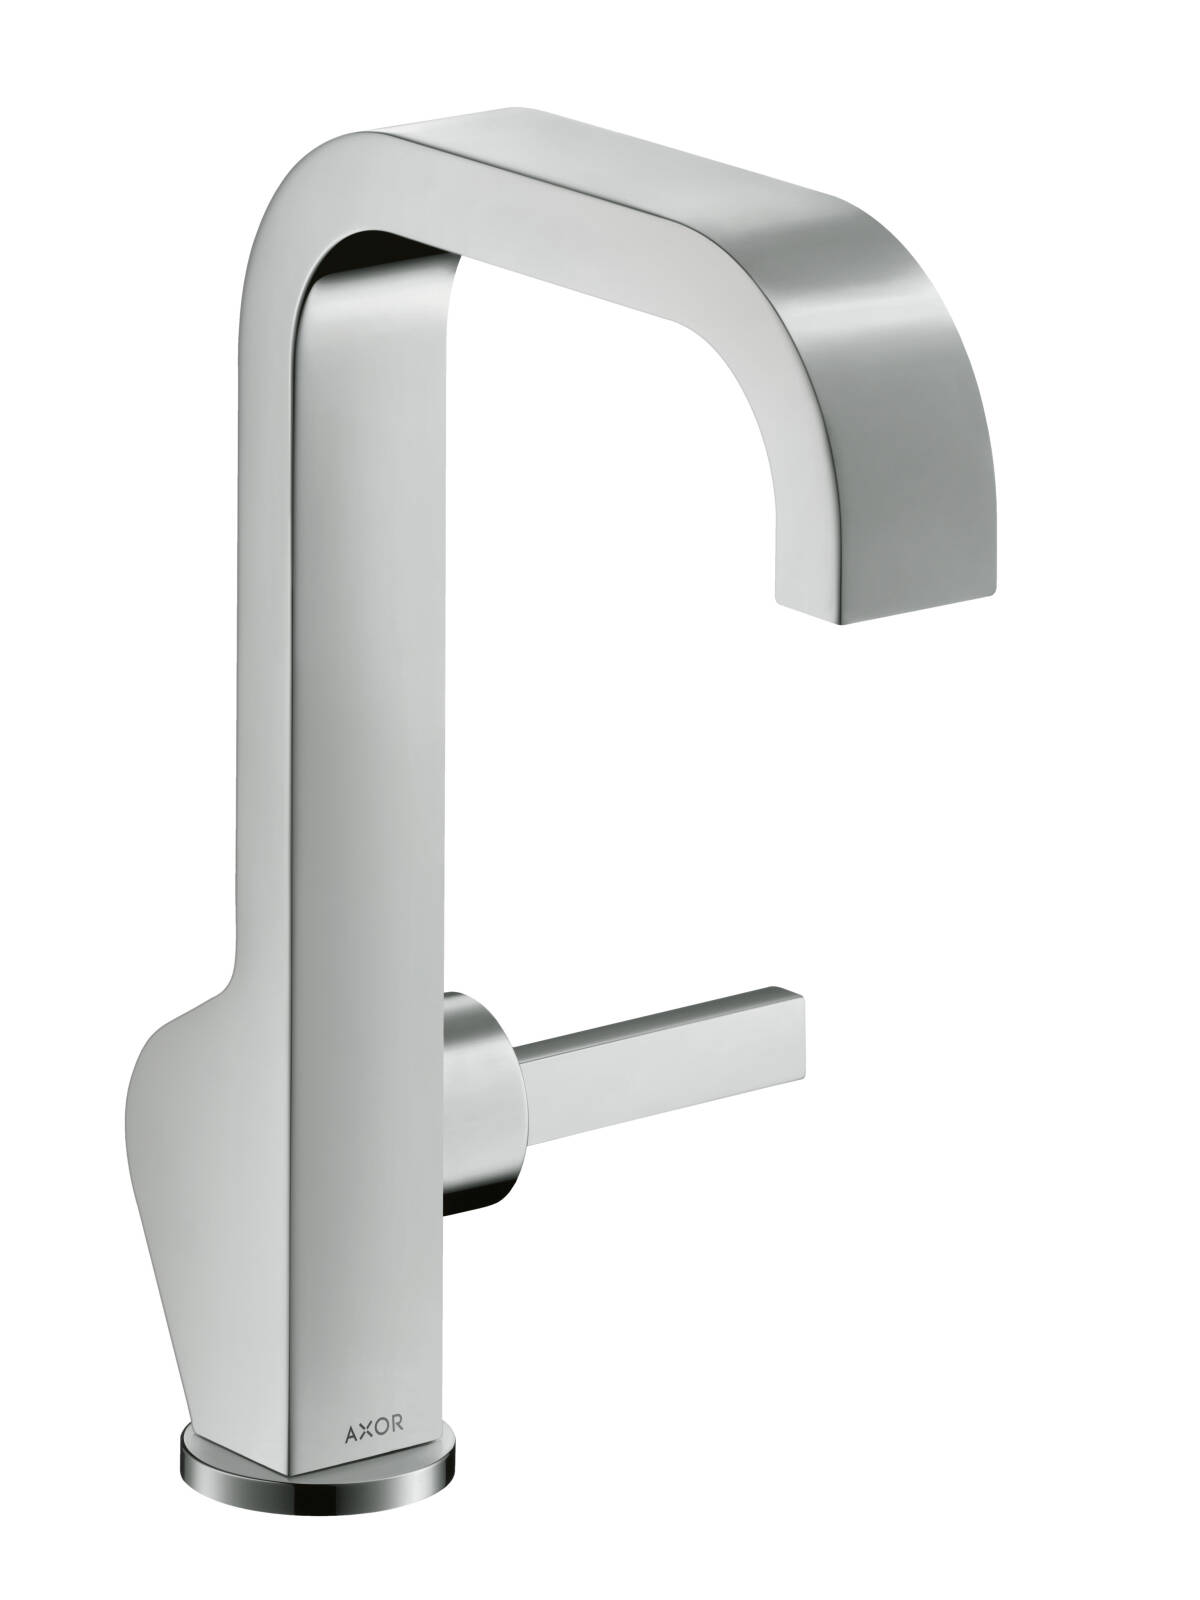 Single lever basin mixer 190 with pin handle and waste set, Chrome, 39037000